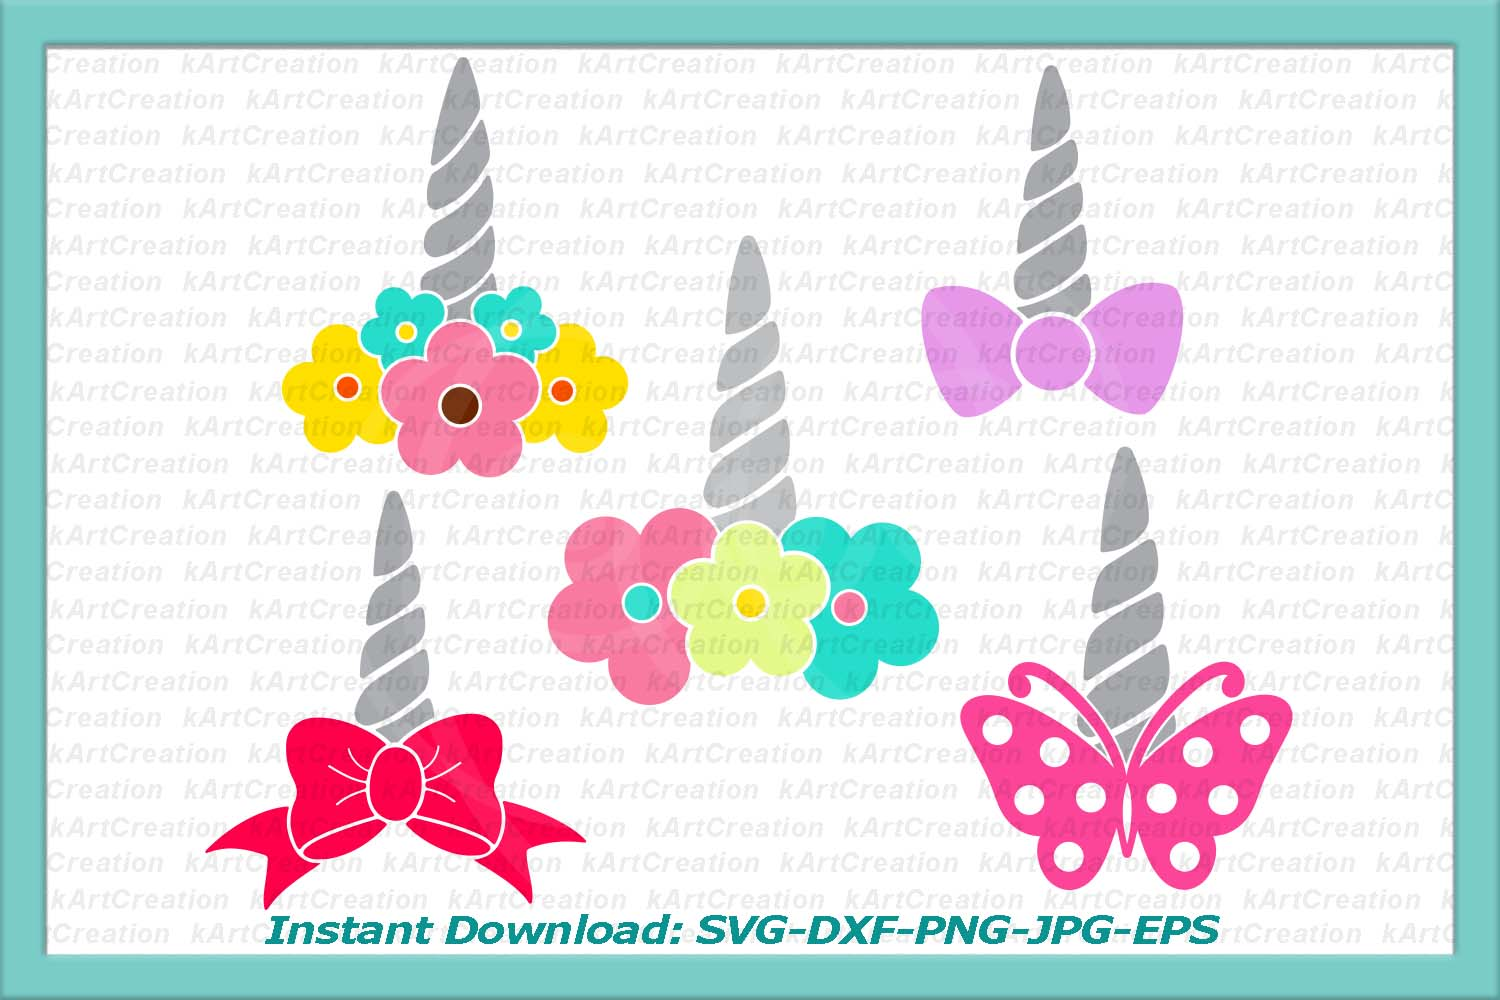 Unicorn horn elements bundle clipart svg cutting files example image 1